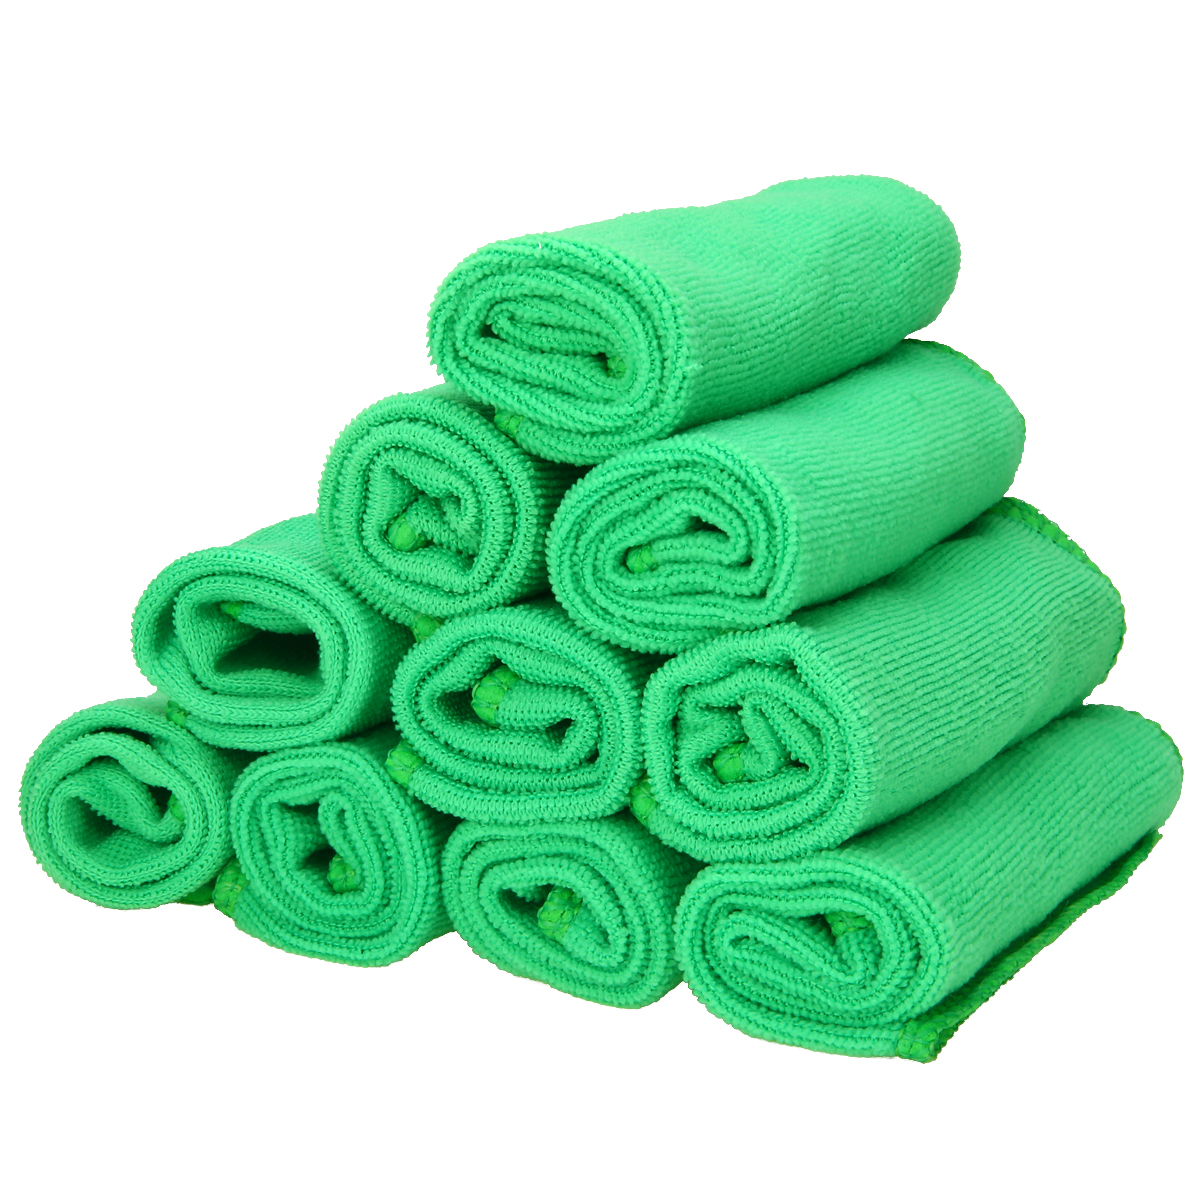 Mayitr 1Set 10X Green Microfiber Cleaning Auto Car Detailing Soft Microfiber Cloths Wash Towel Duster Home Clean 25*25CM-in Sponges, Cloths & Brushes from Automobiles & Motorcycles